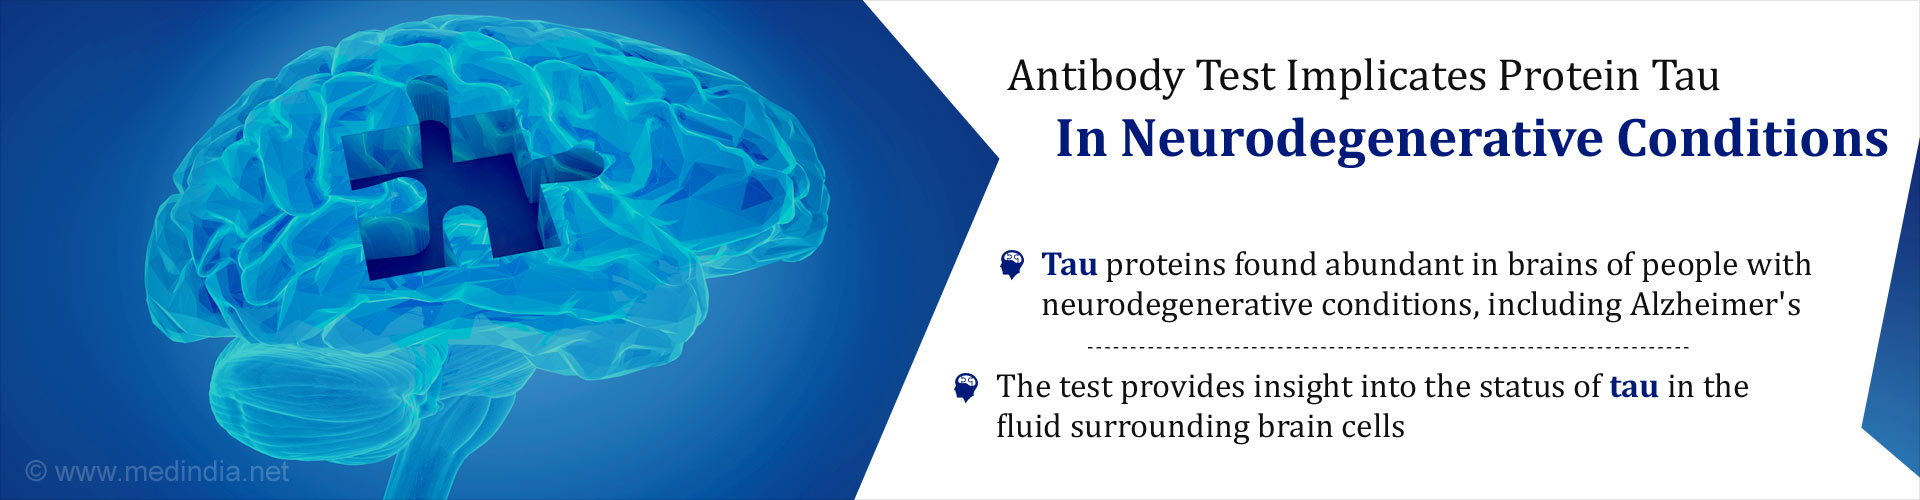 Antibody test implicates protein tau in neurodegenerative conditions